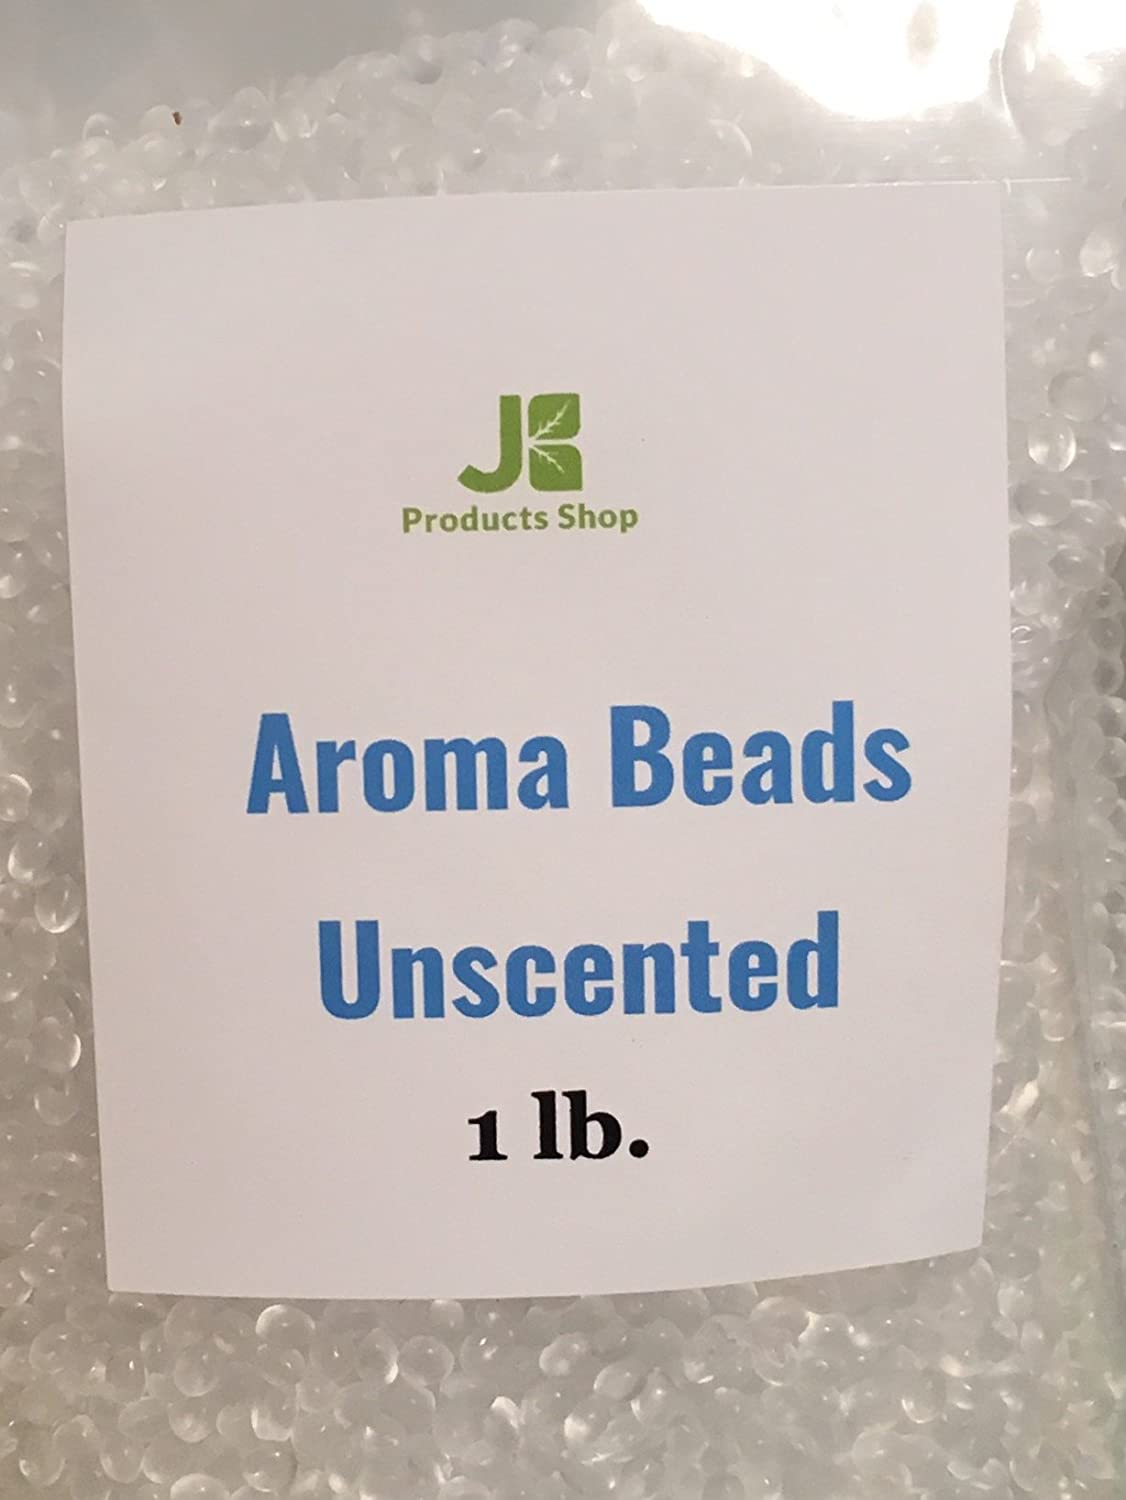 Aroma Beads Unscented 1 lb - Ready for Creating Your Own Scent. Make a Long Lasting Home Fragrance! JB Products Shop